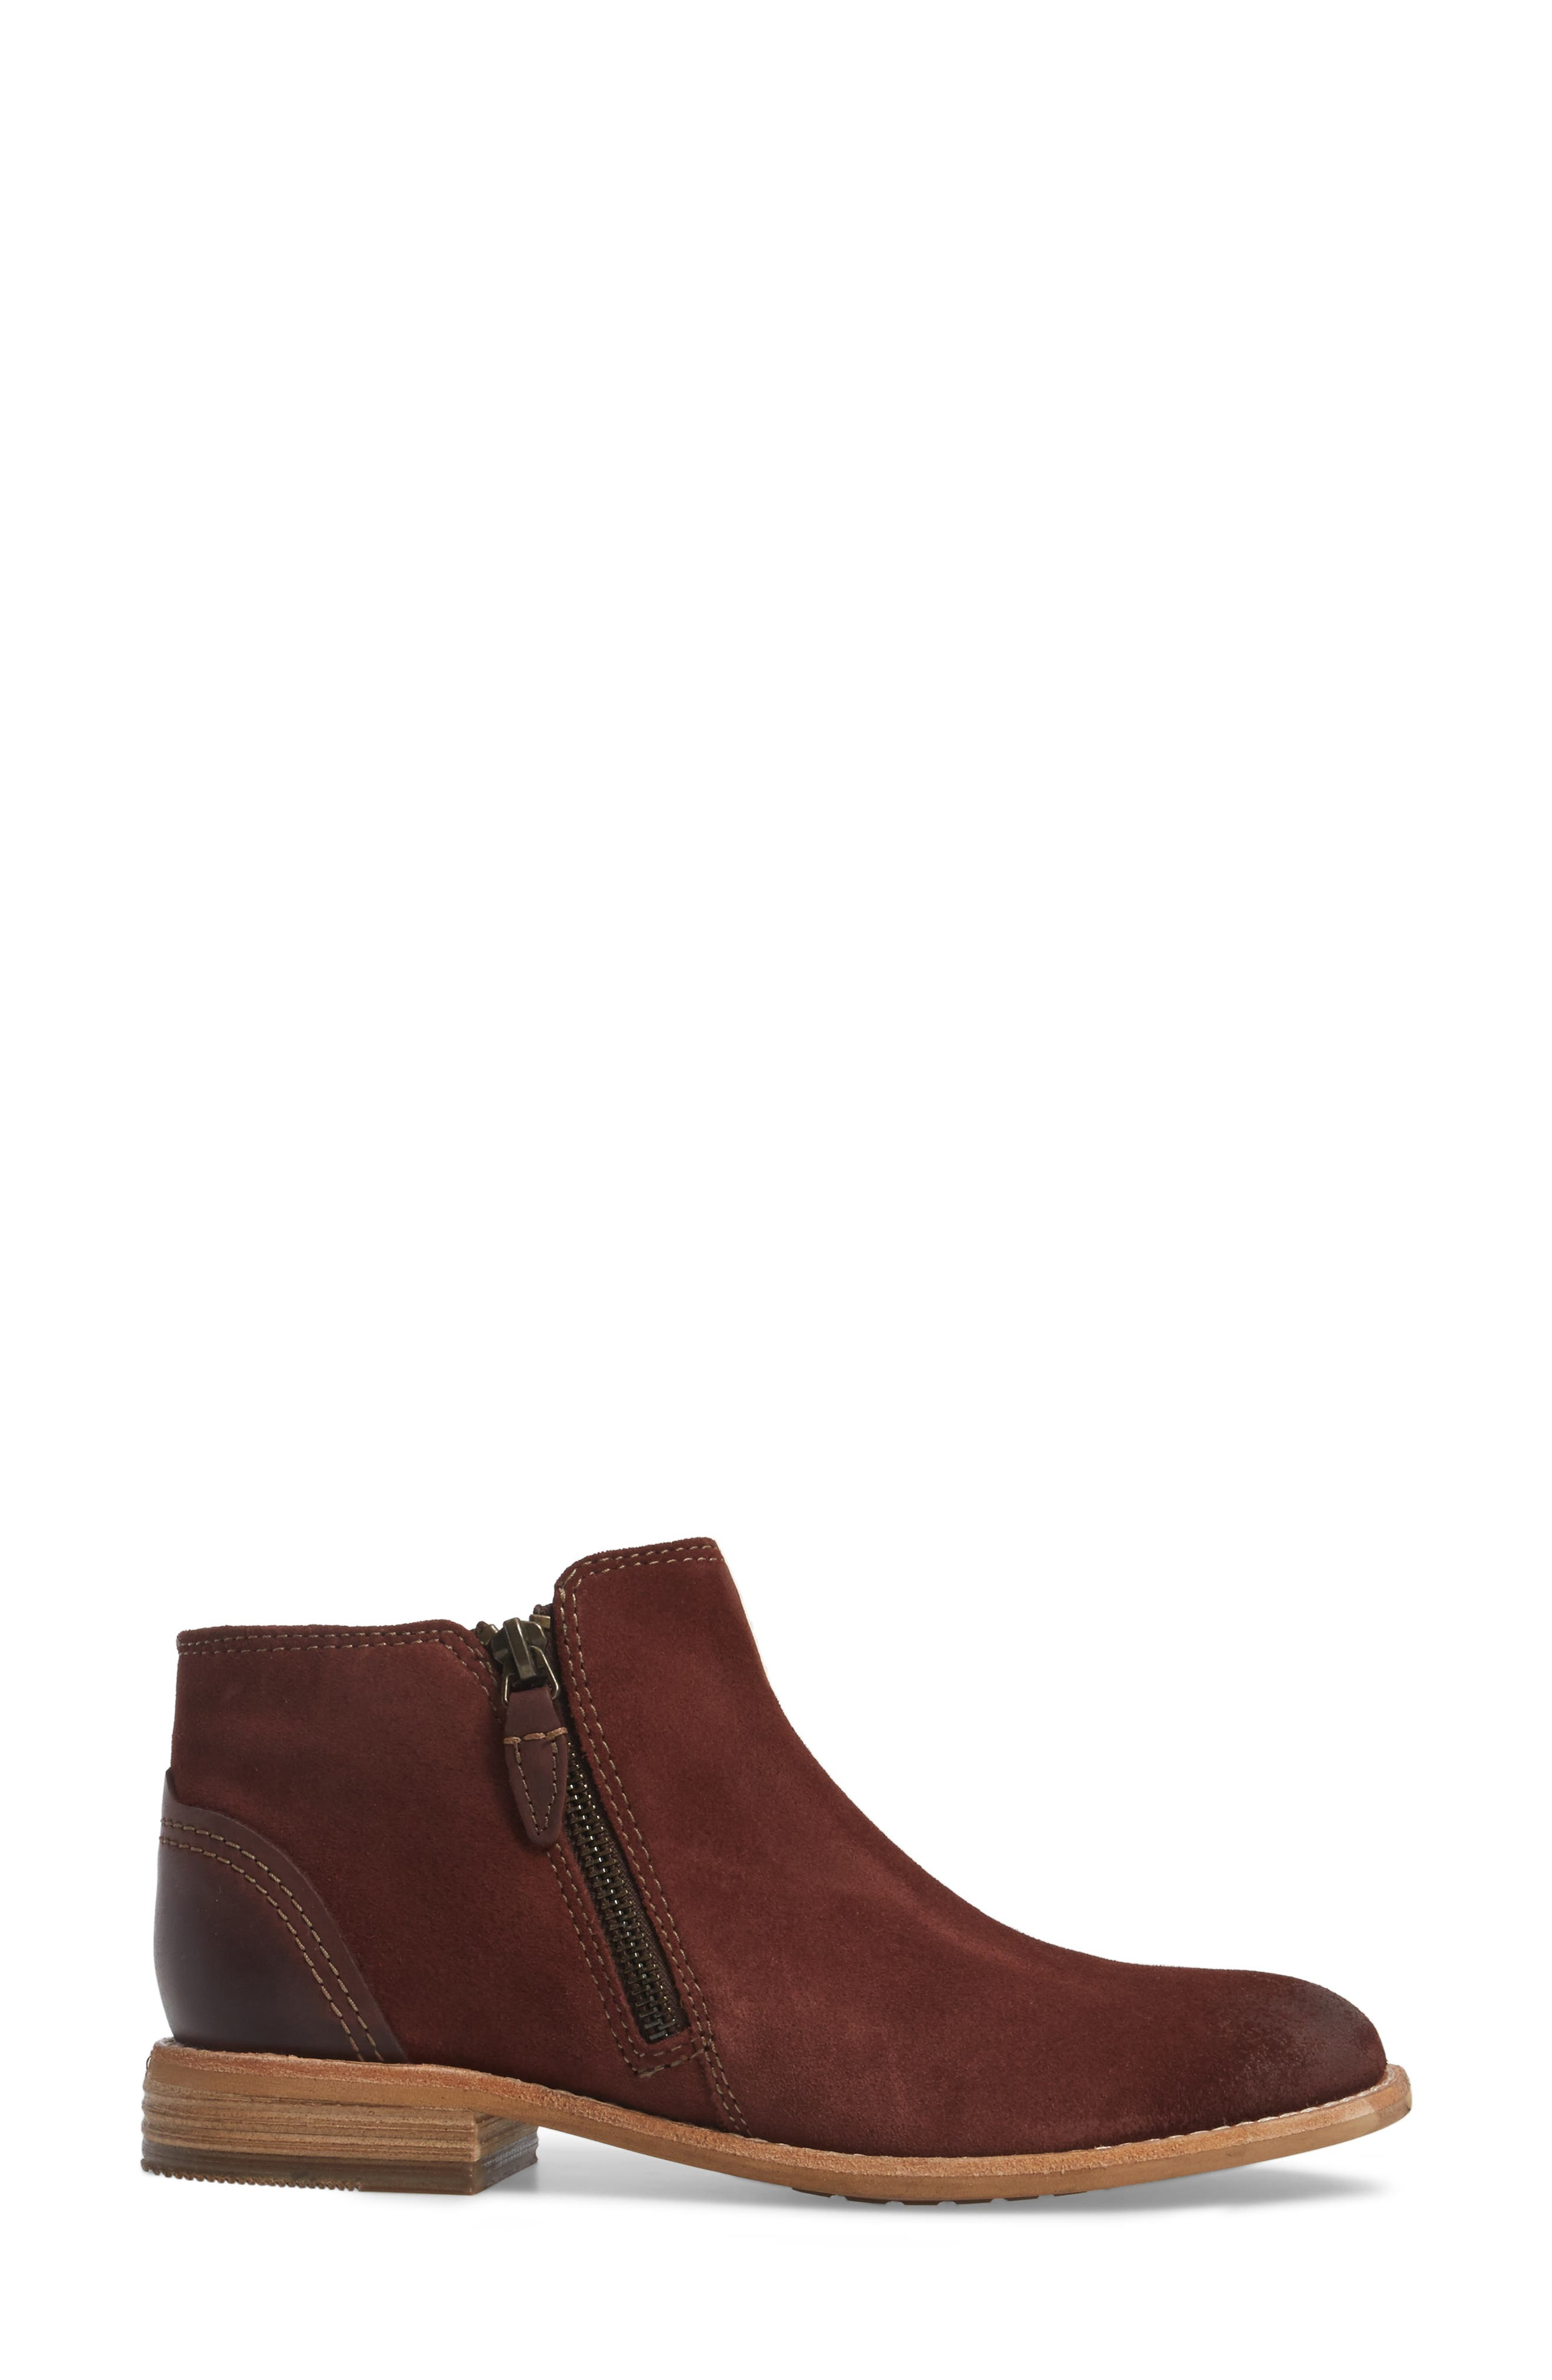 CLARKS<SUP>®</SUP>, Maypearl Juno Ankle Boot, Alternate thumbnail 3, color, MAHOGANY SUEDE